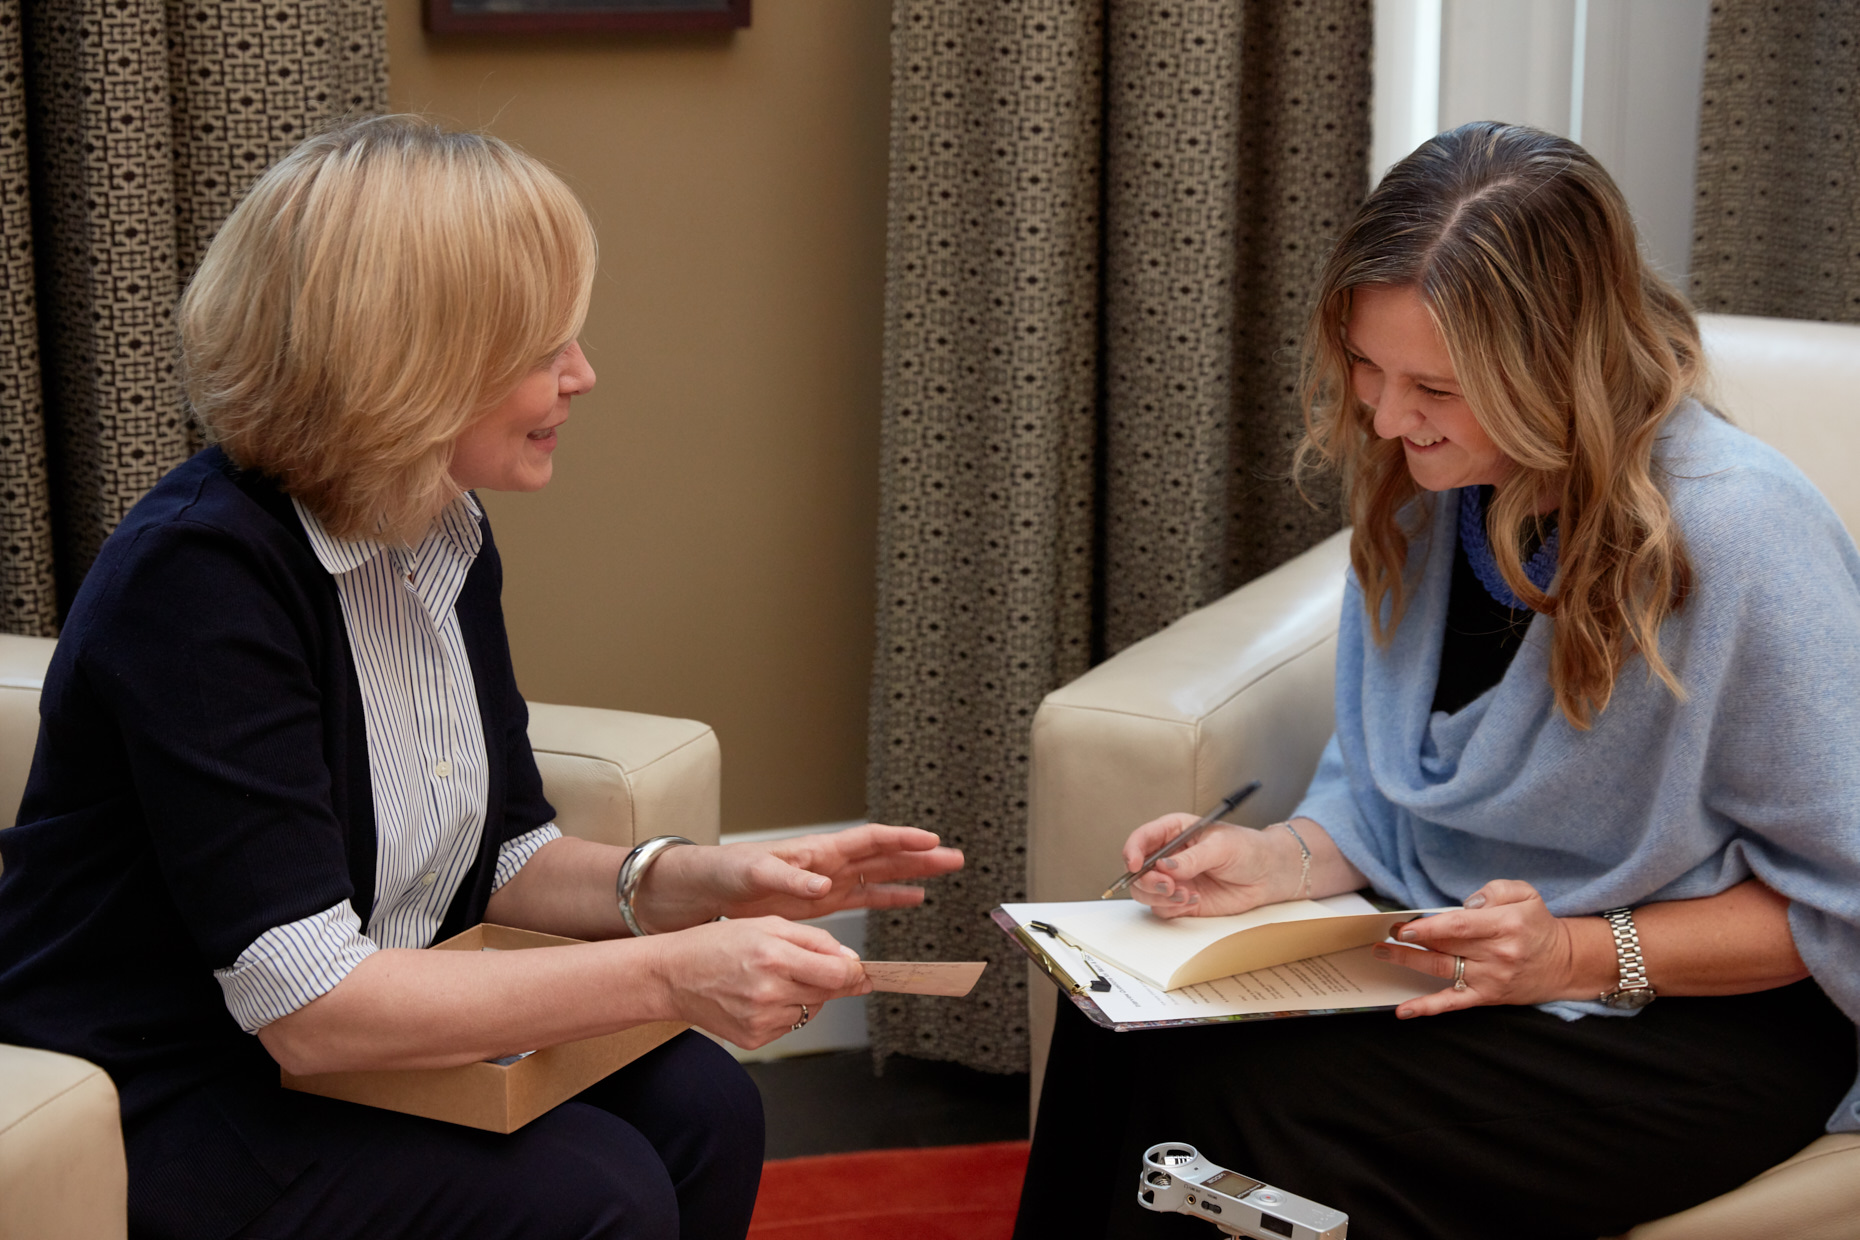 Dawn Roode is a personal biographer who conducts interviews in person to capture your stories for a life story book.